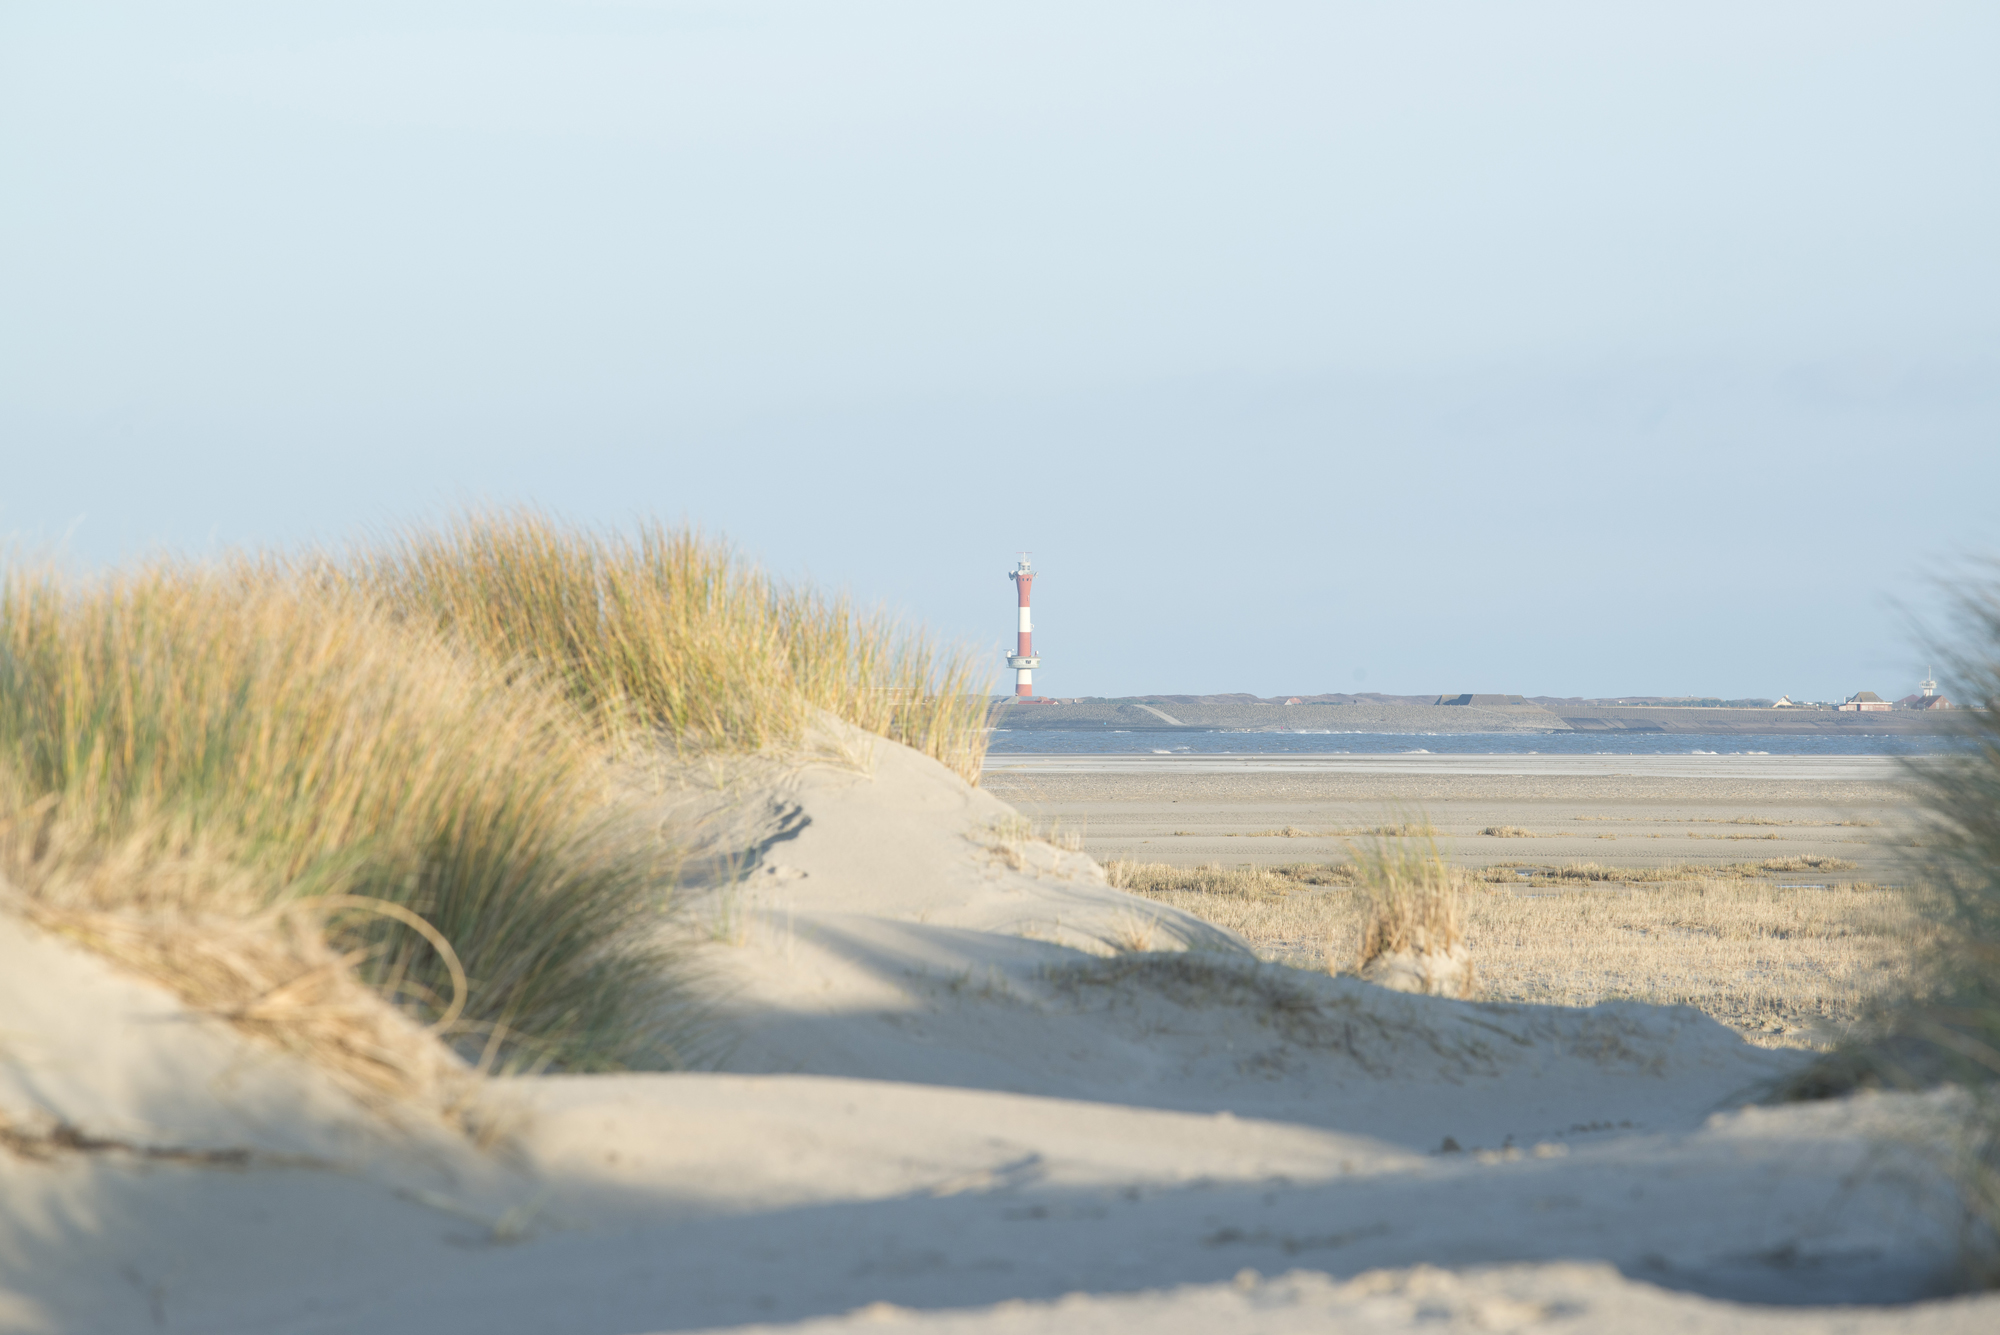 Hilly sand dunes on the coast with grass, and the sea in the distance in a bay, wihth a red and white lighthouse on the other side of the bay